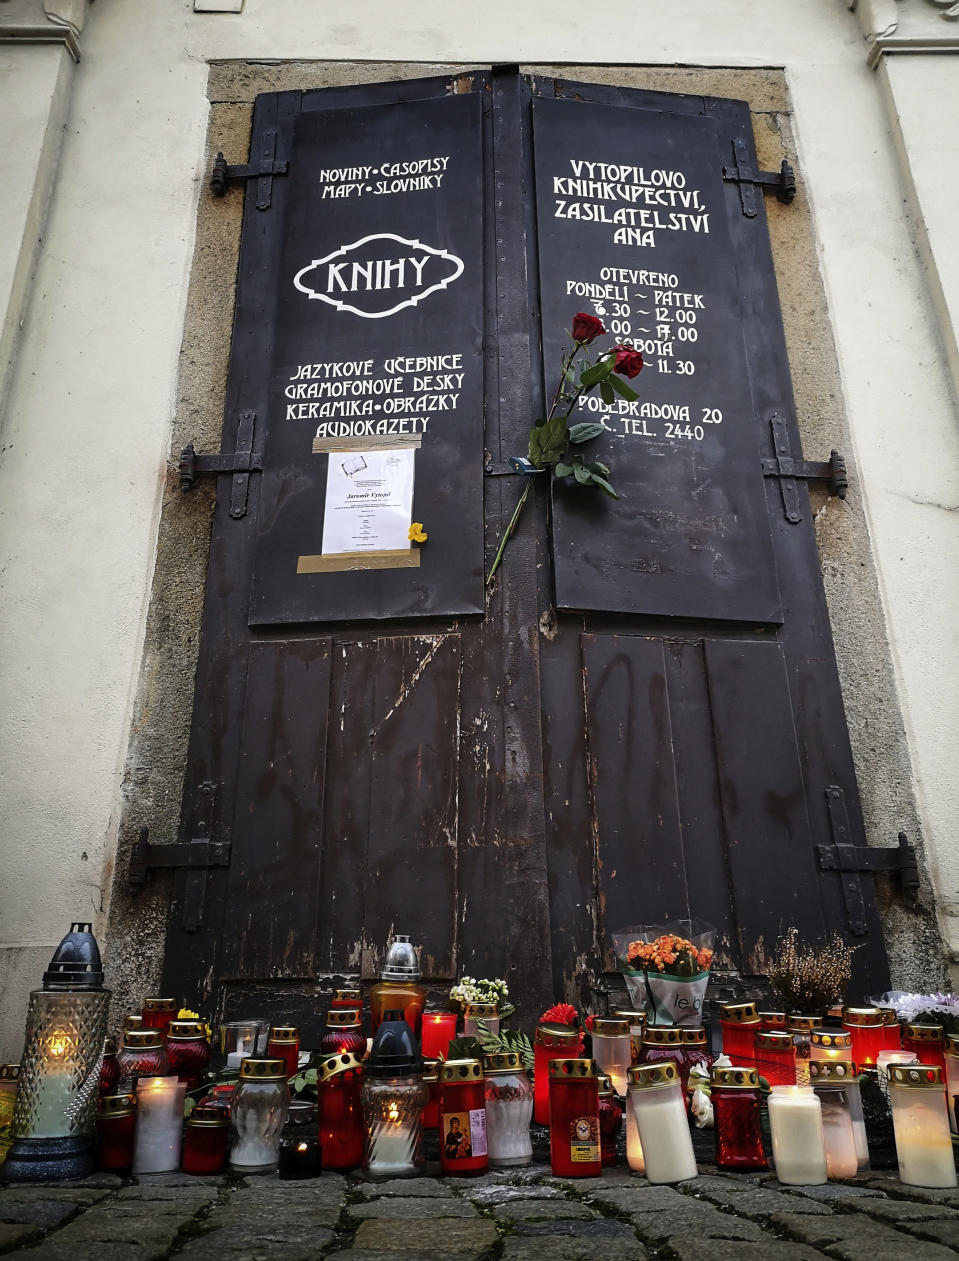 Candles and flowers are placed in front of Jaromir Vytopil's bookstore in Pelhrimov, Czech Republic, Wednesday, Nov. 11, 2020. Some 25,000 have been killed by COVID-19 in the hard-hit Czech Republic. Jaromir Vytopil was one of them. His everyday presence in the small Czech town of Pelhrimov was something everybody took for granted for seven decades as he had served the generations of readers. The longest serving Czech bookseller, passed away on Nov 9. 2020, at age of 83. (AP Photo/Jan Vytopil)